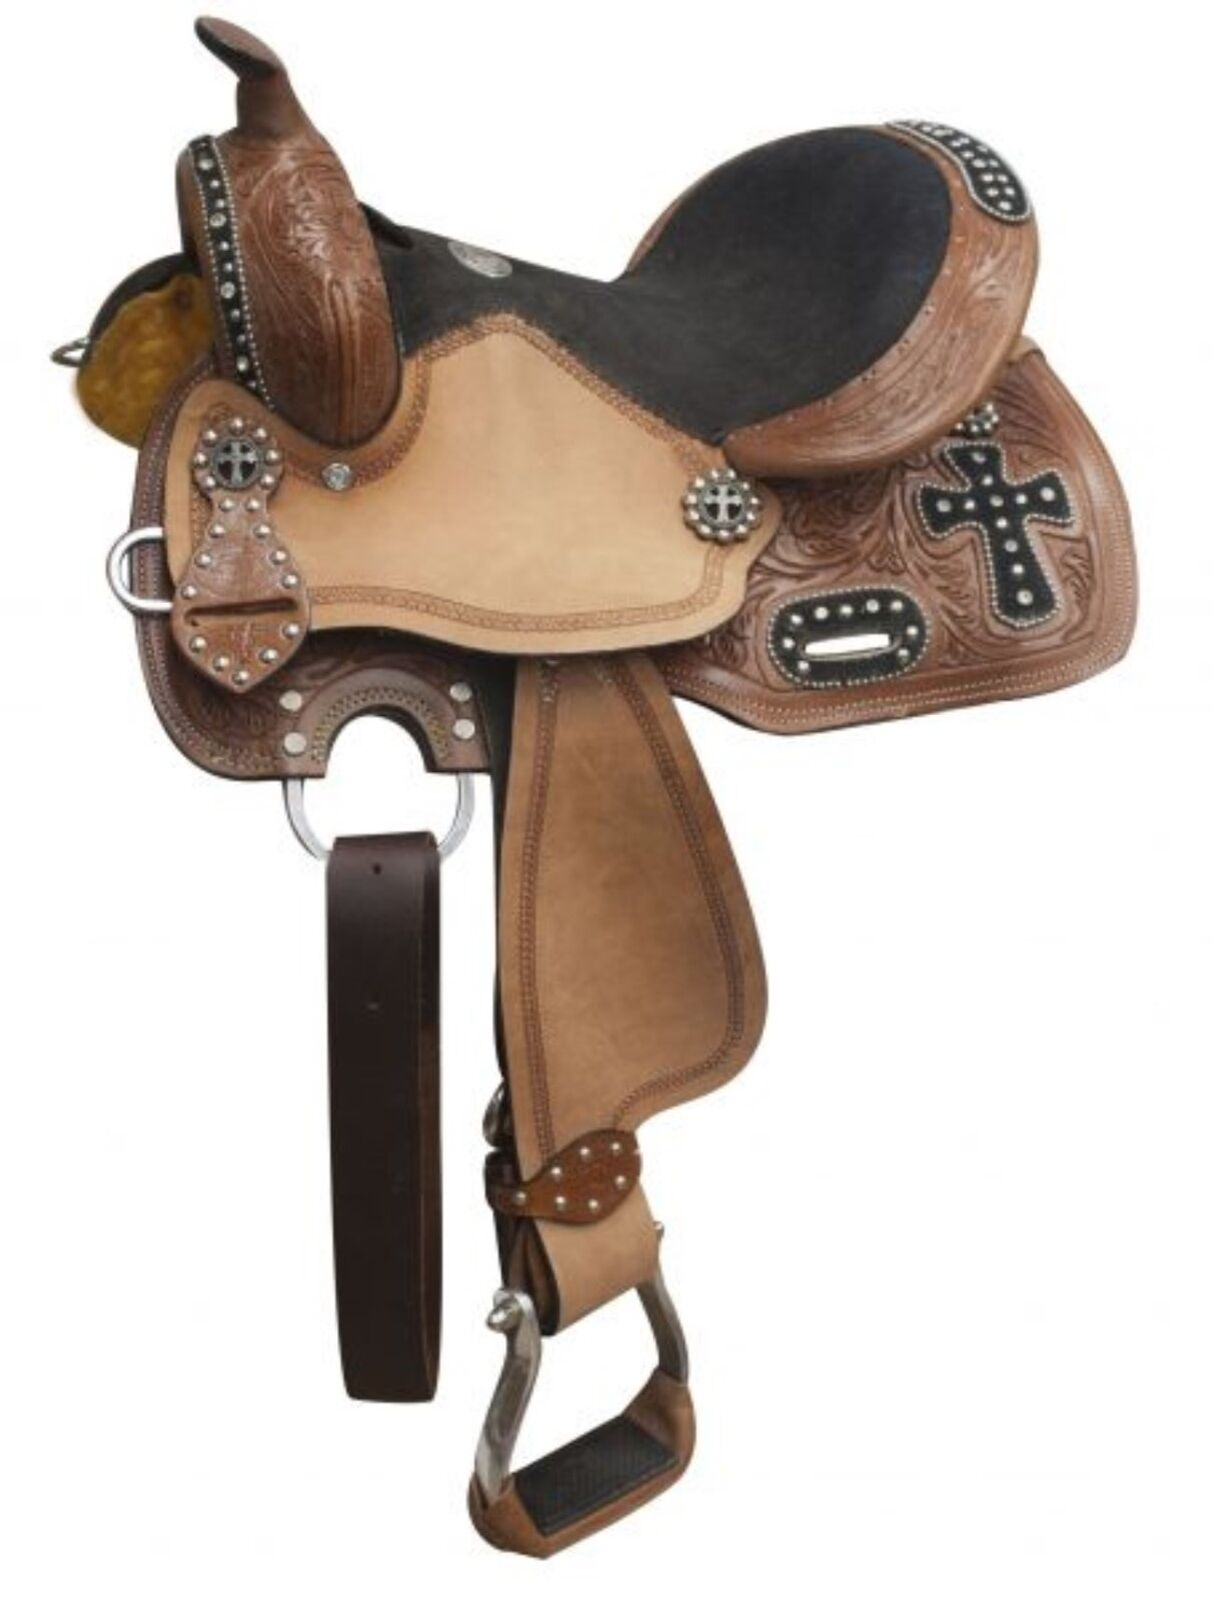 10  Double T Youth Barrel Style Western Saddle W  Cross Design & Rhinestones